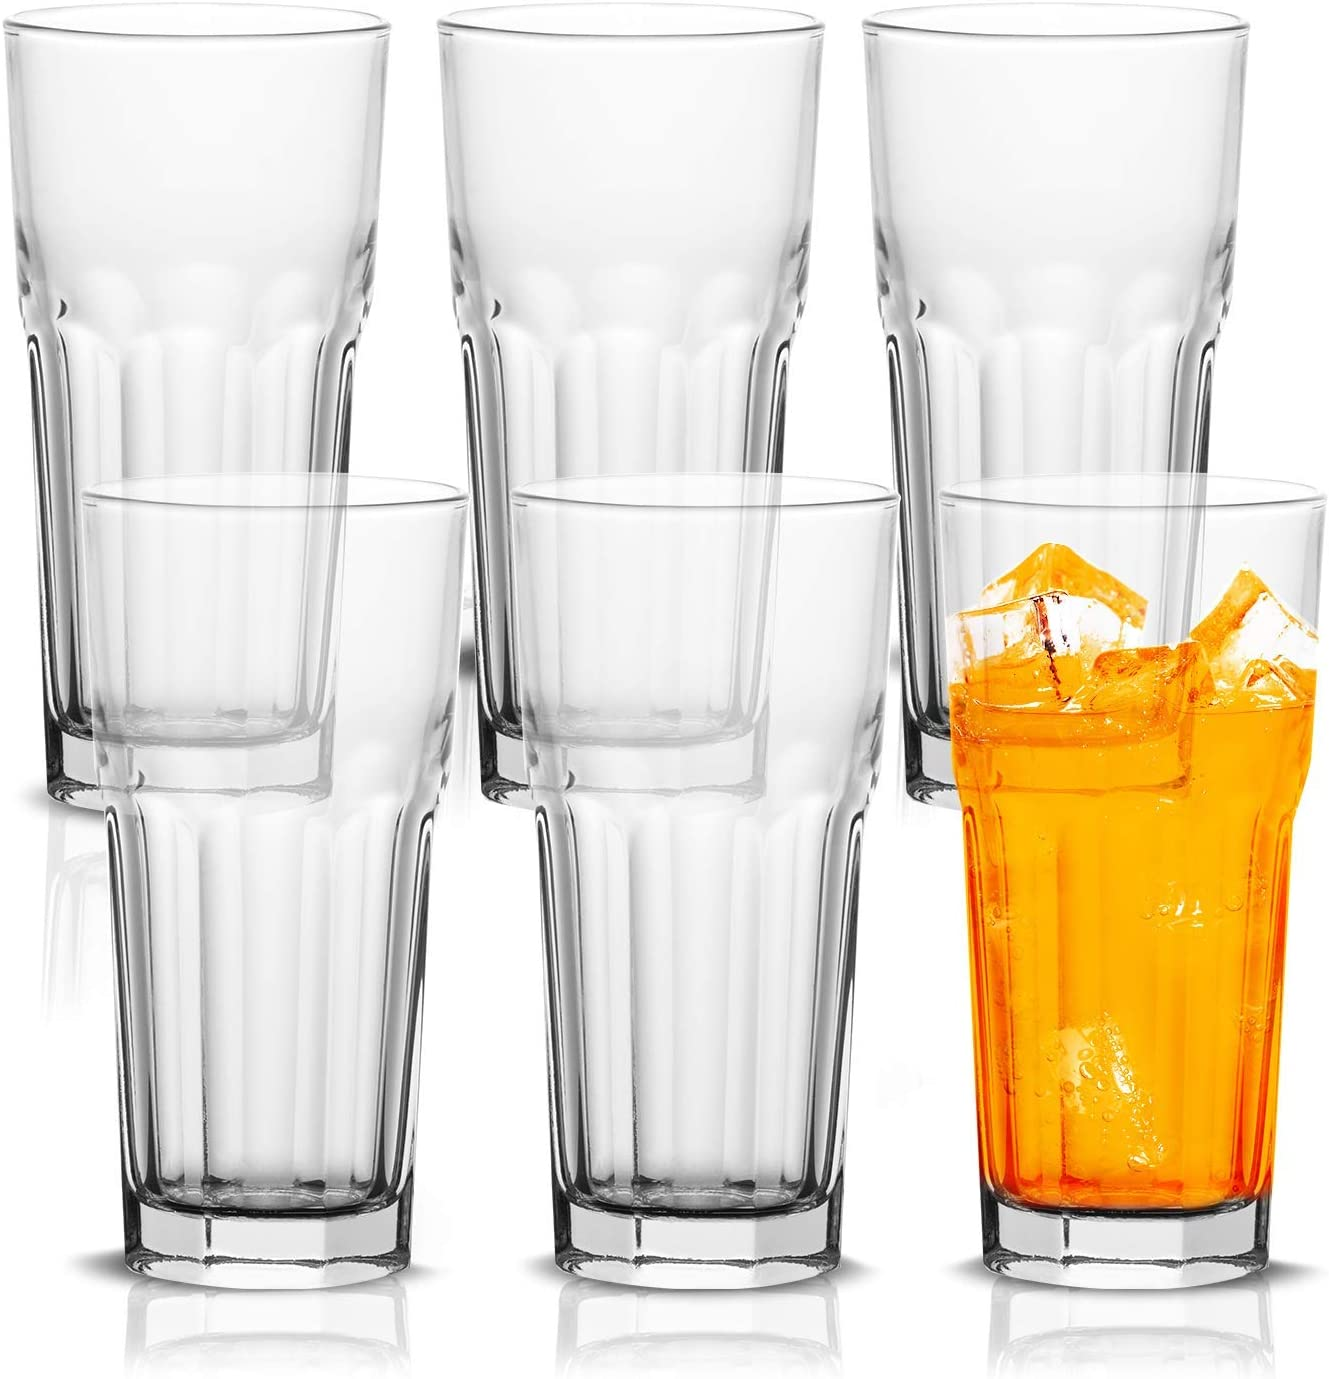 Vikko 11.75 Ounce Drinking Glasses: Popular overseas Thick Gl Kitchen and Large-scale sale Durable